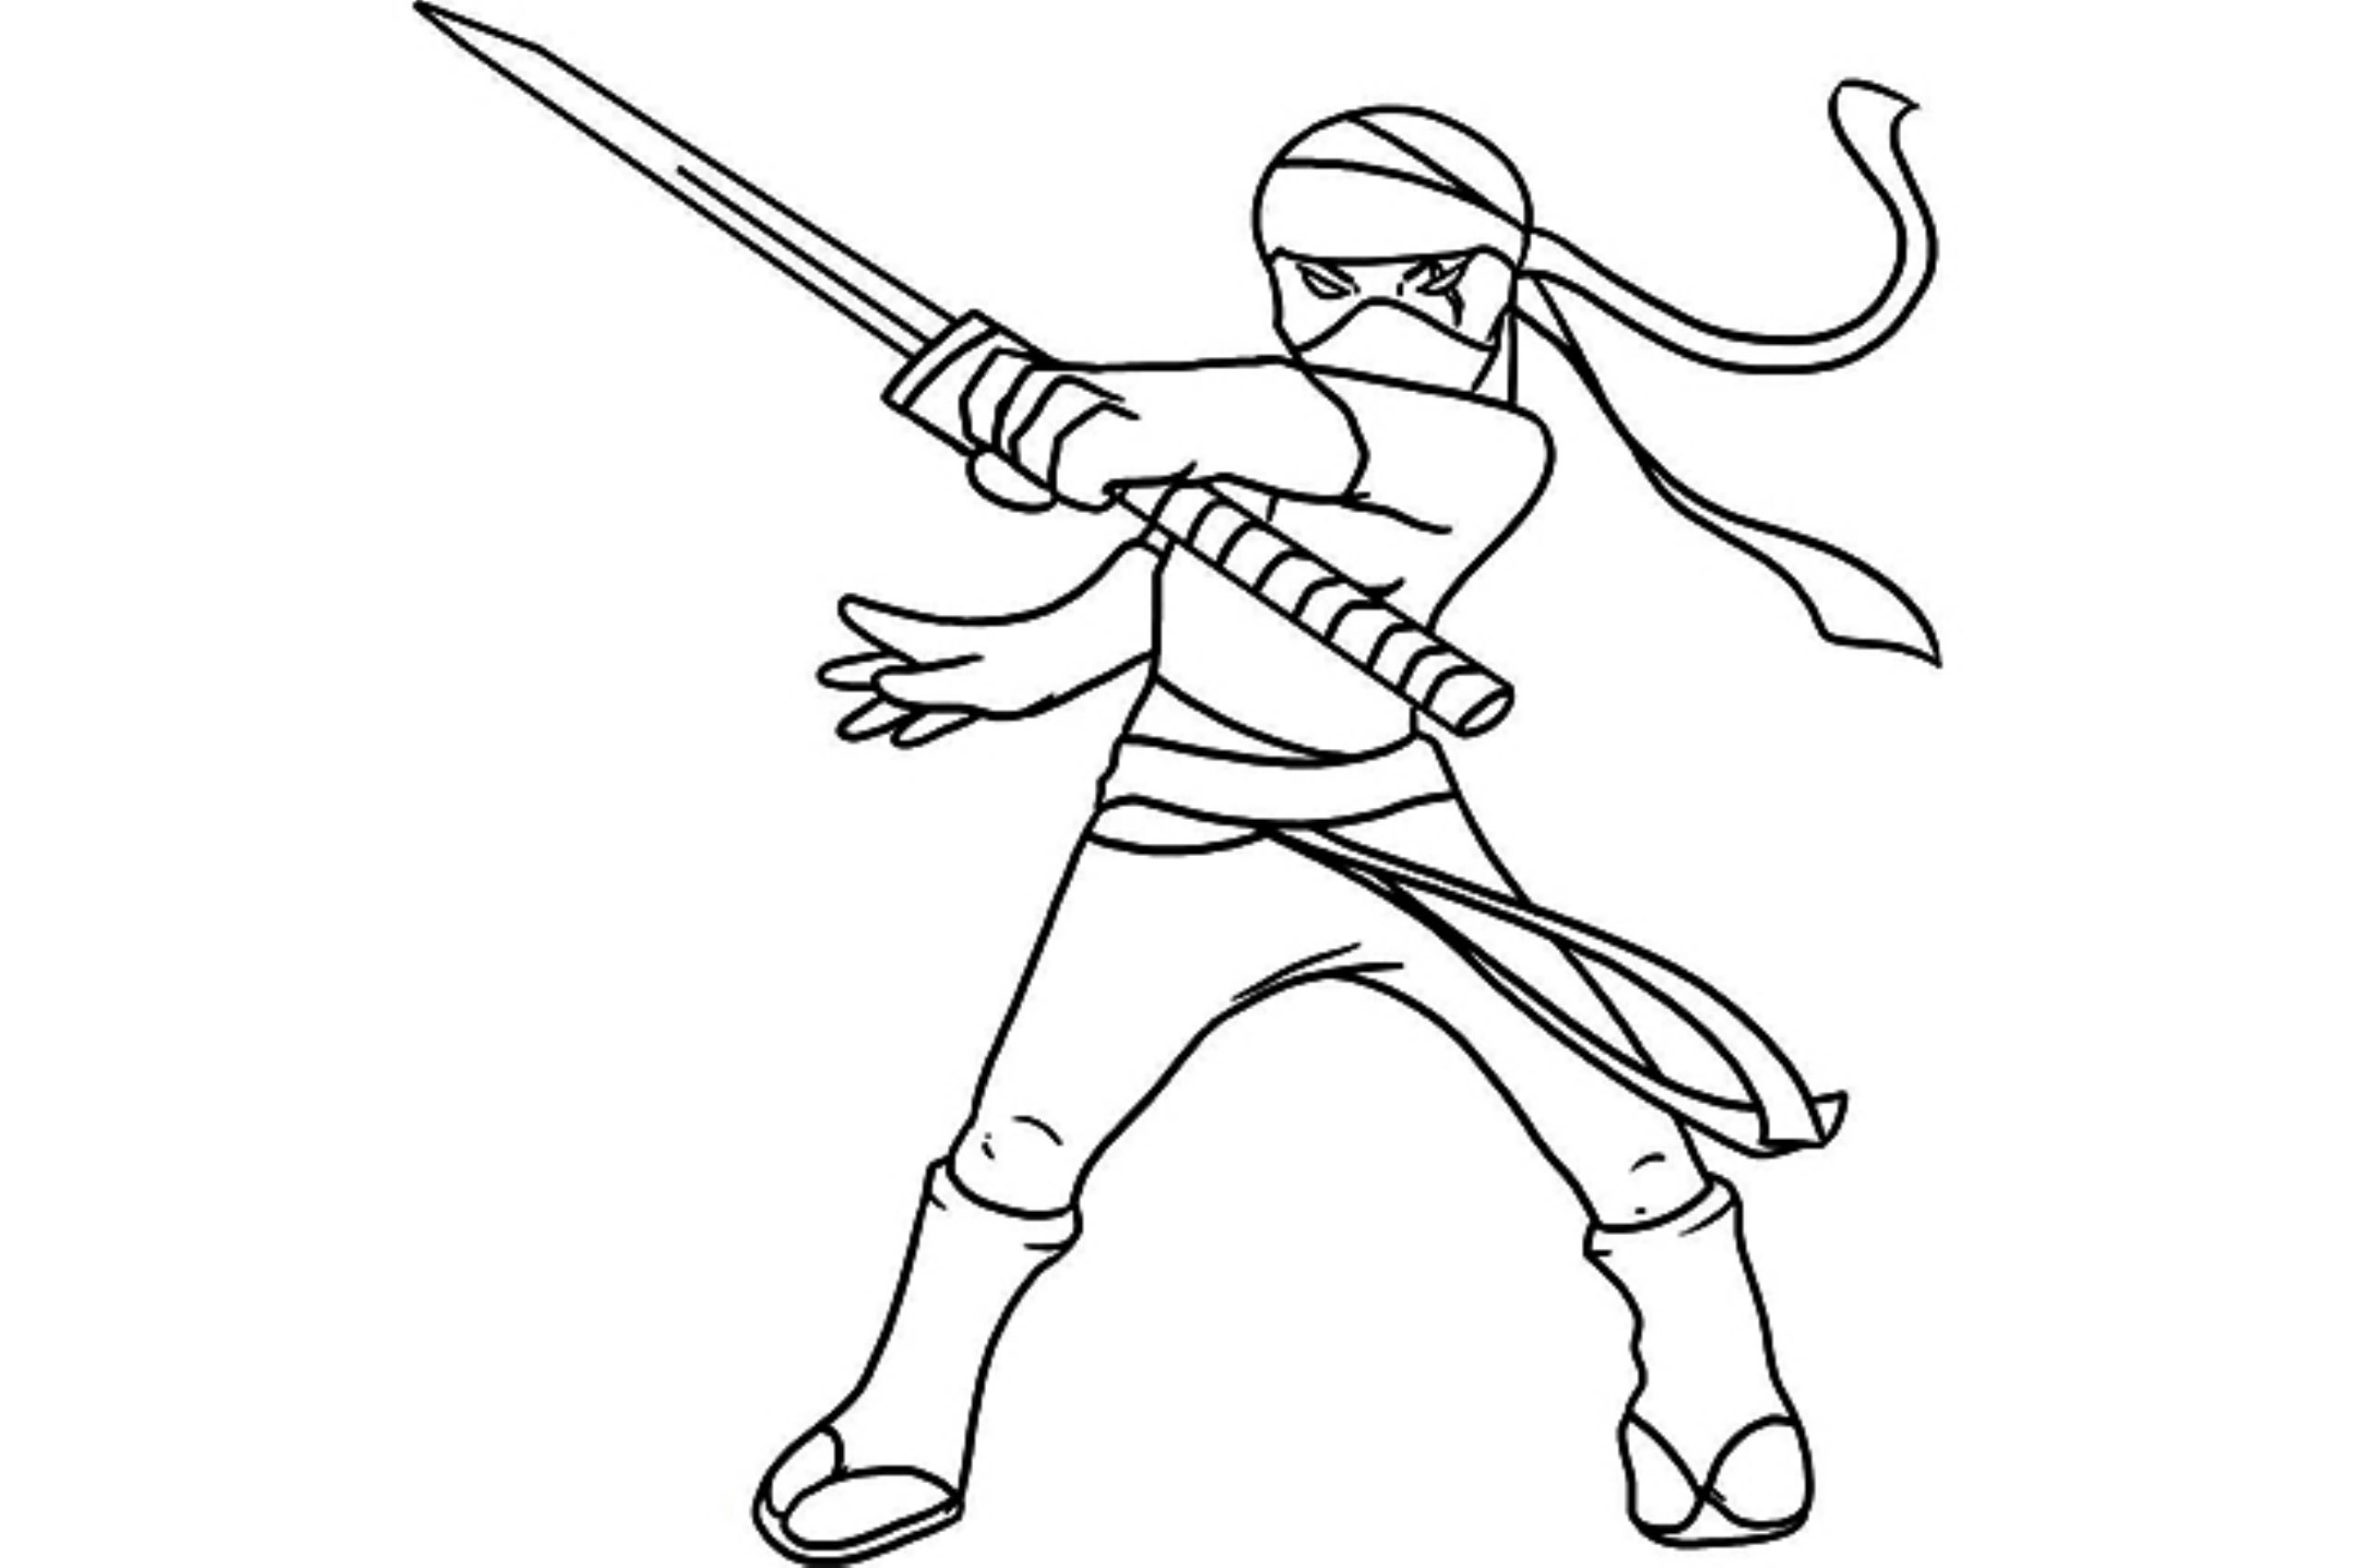 Ninja Coloring Pages Super Coloring Pages Superhero Coloring Pages Lego Coloring Pages